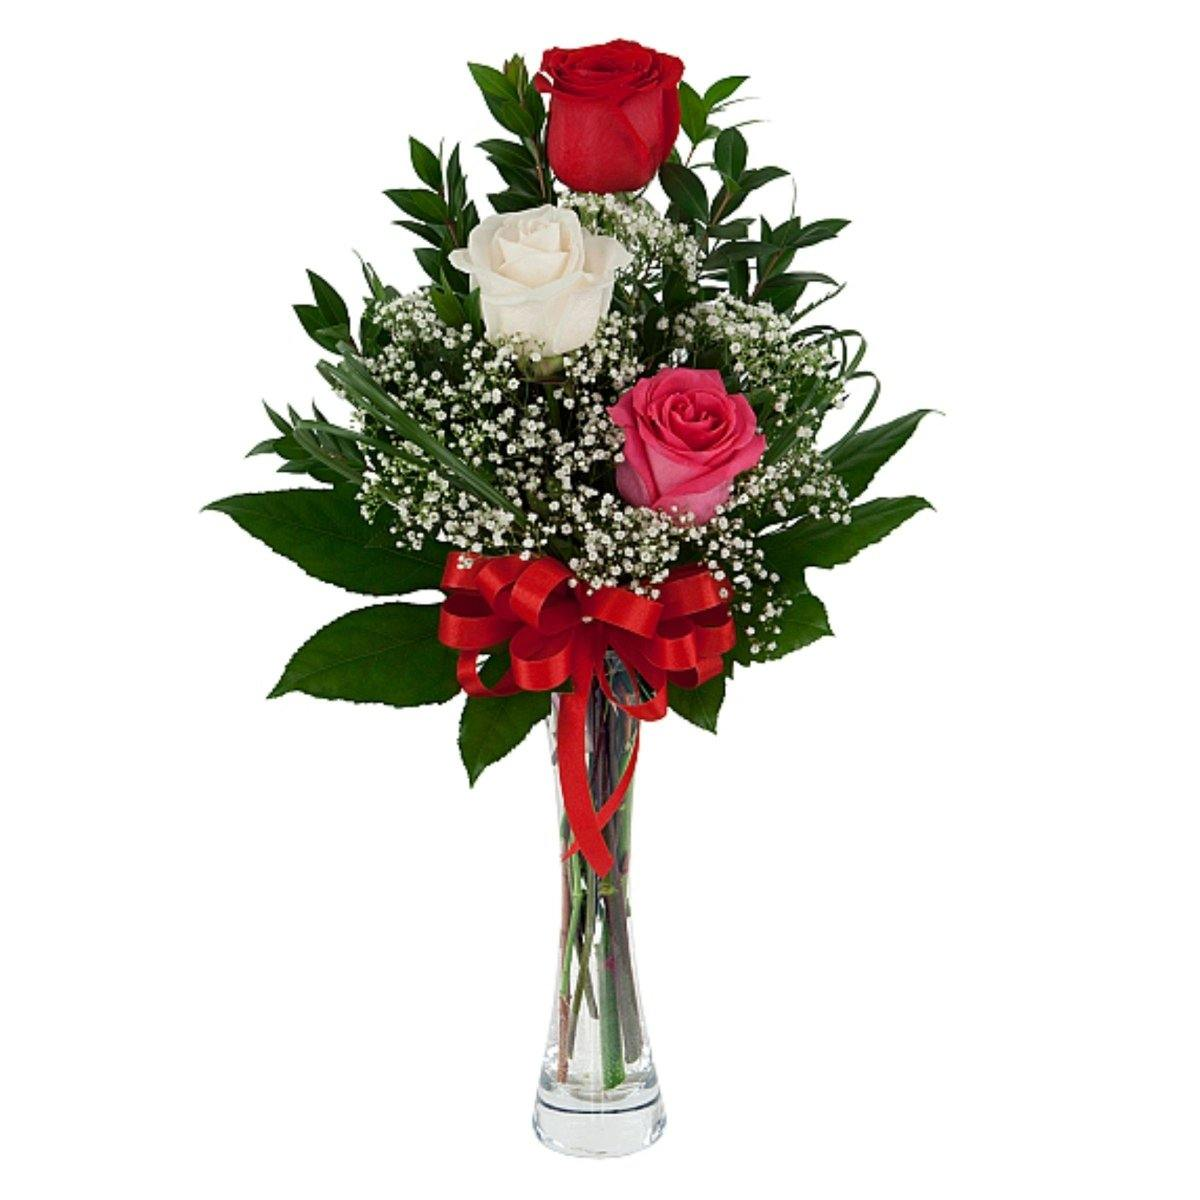 Triple Rose Bouquet with Vase 2019 - Shalimar Flower Shop